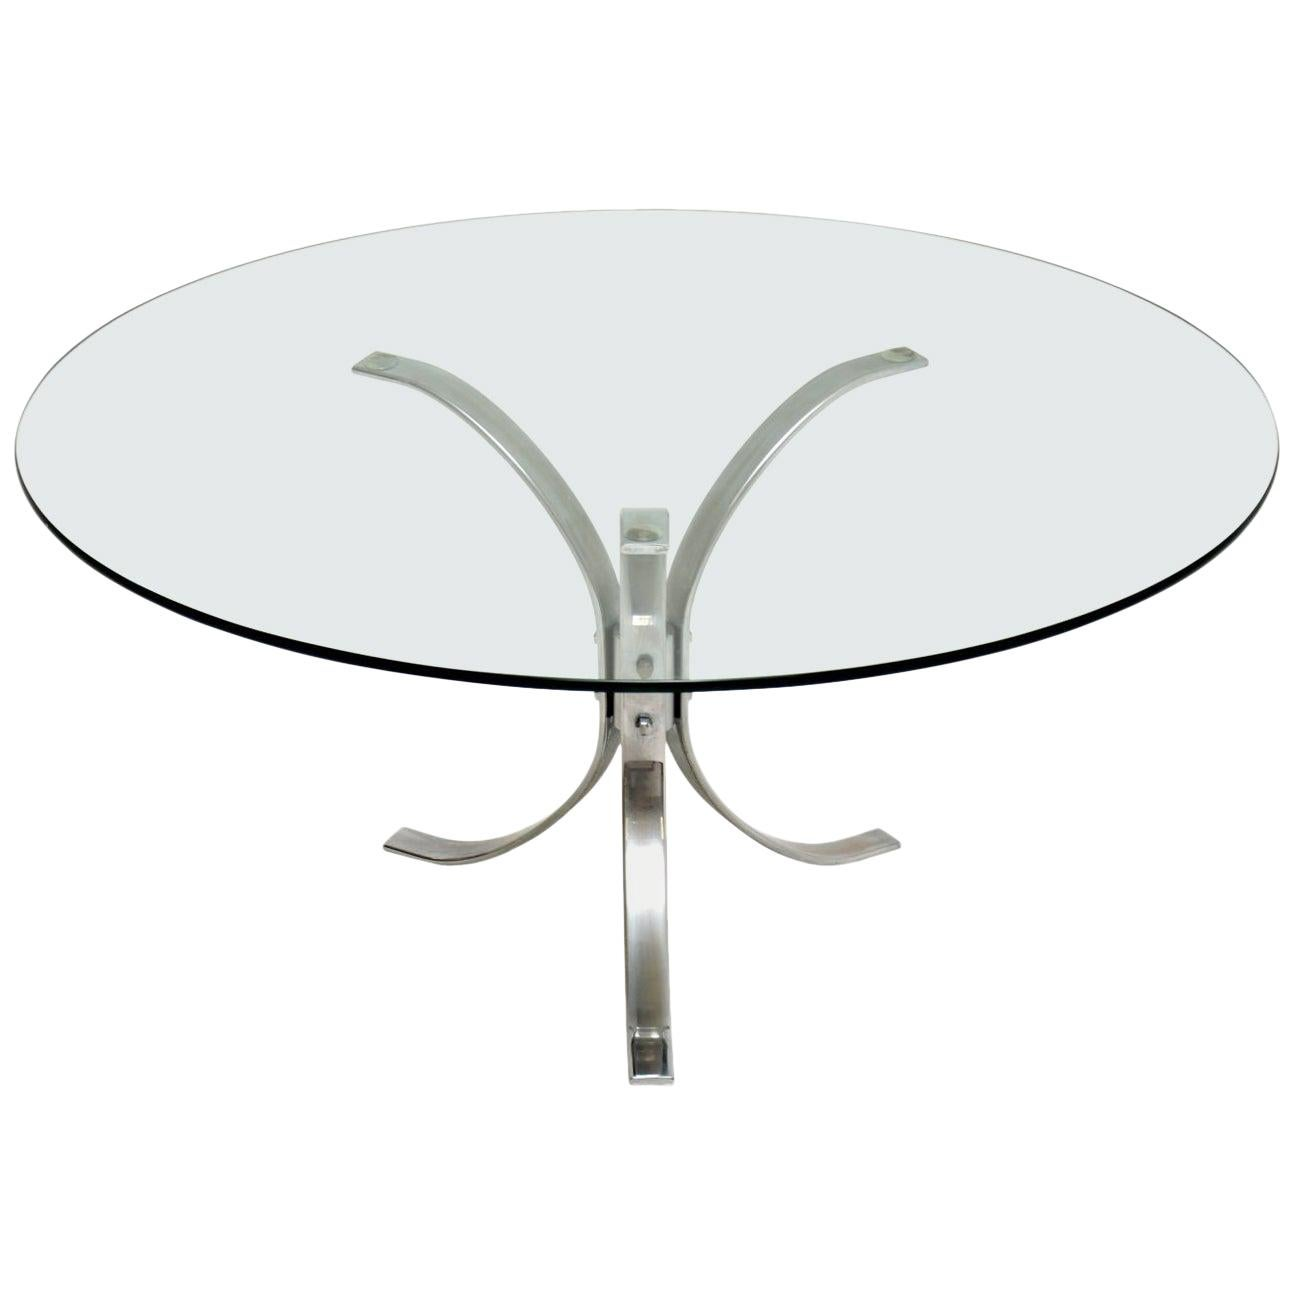 1960s Vintage Chrome and Glass Coffee Table